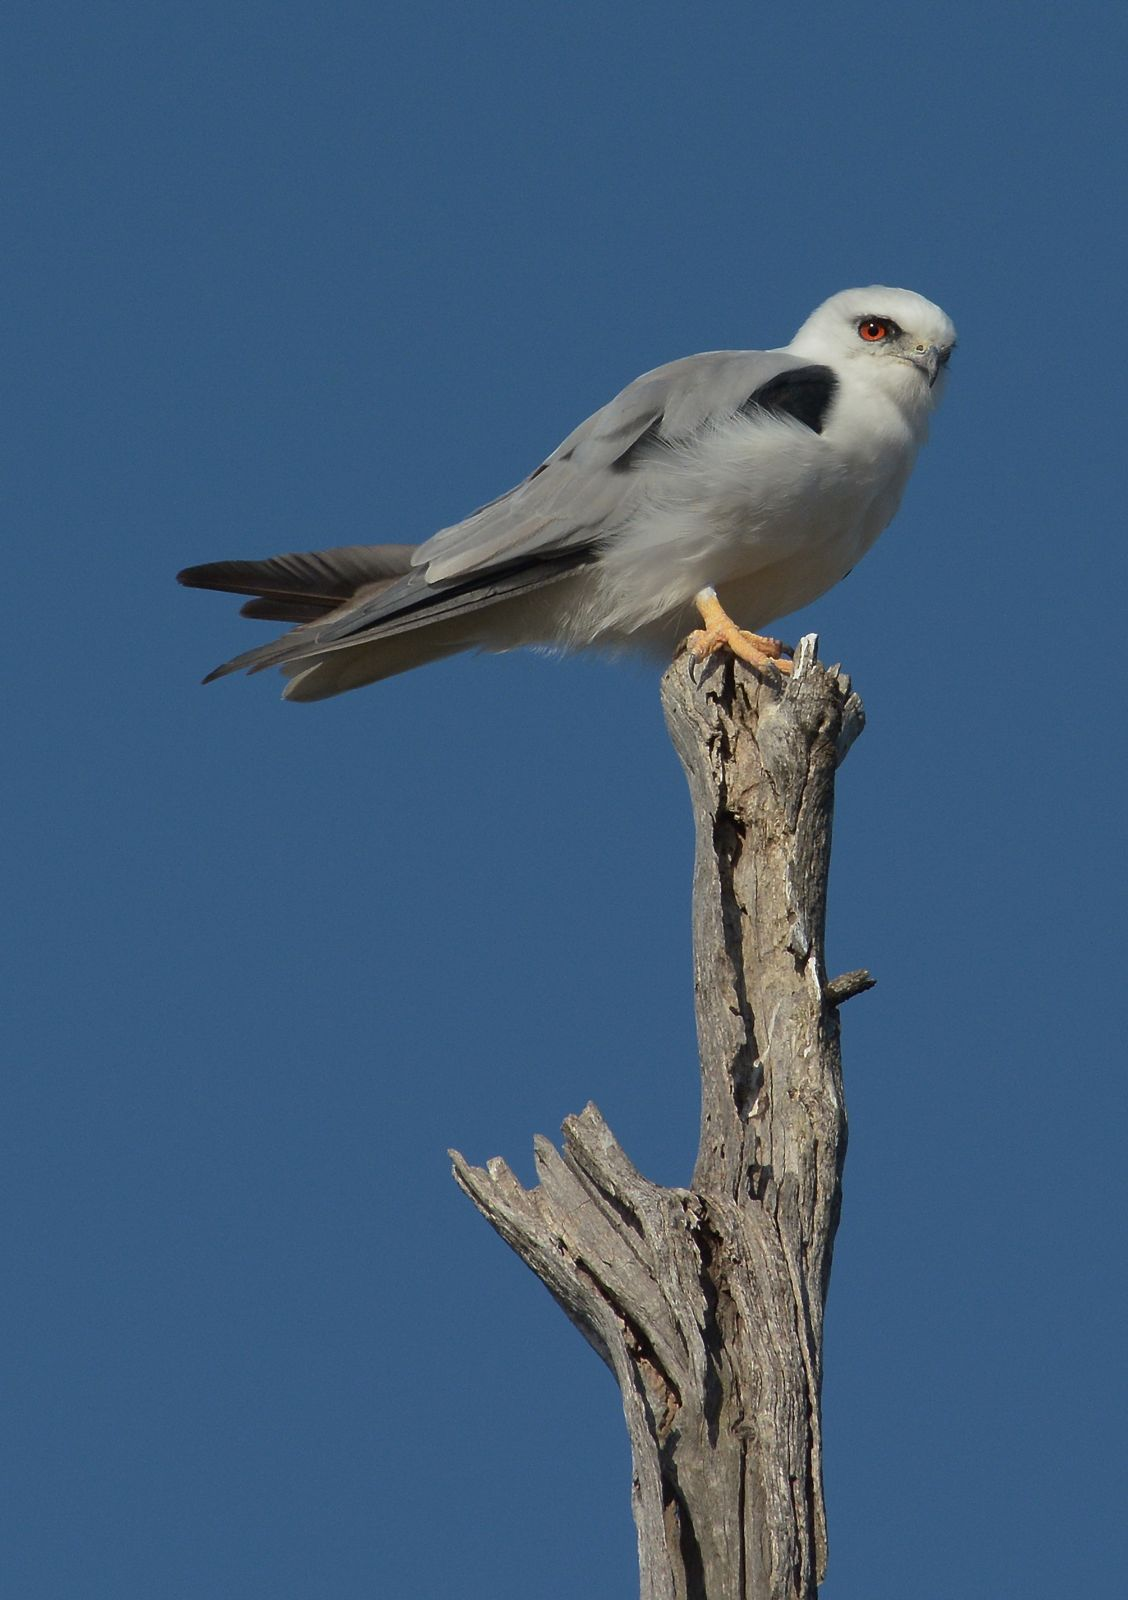 Black-shouldered Kite on a high vantage point.